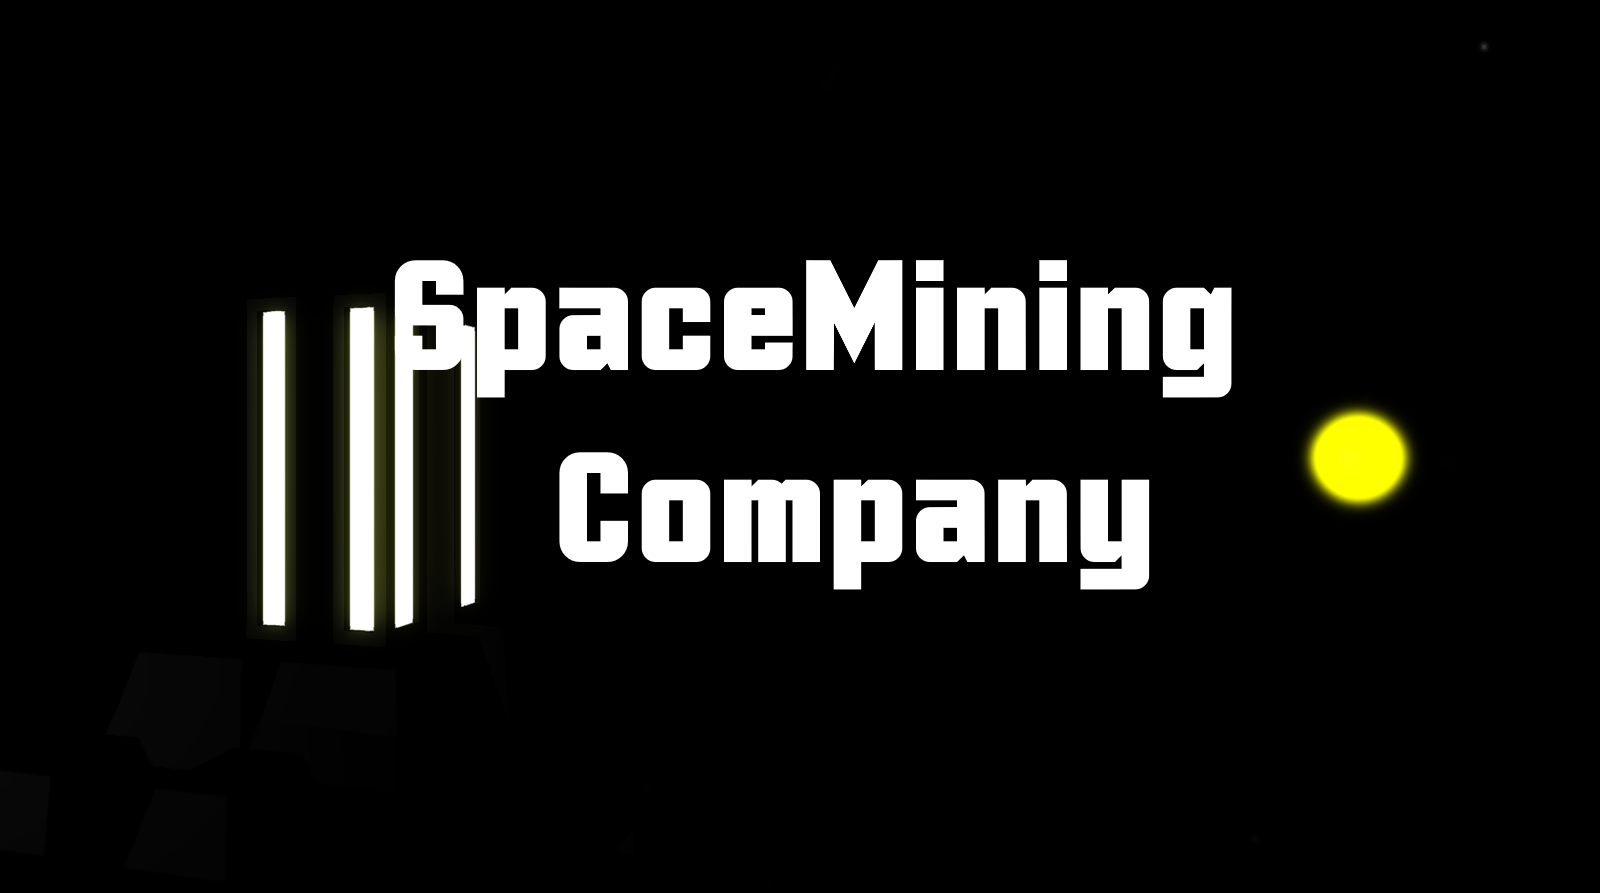 SpaceMiningCompany